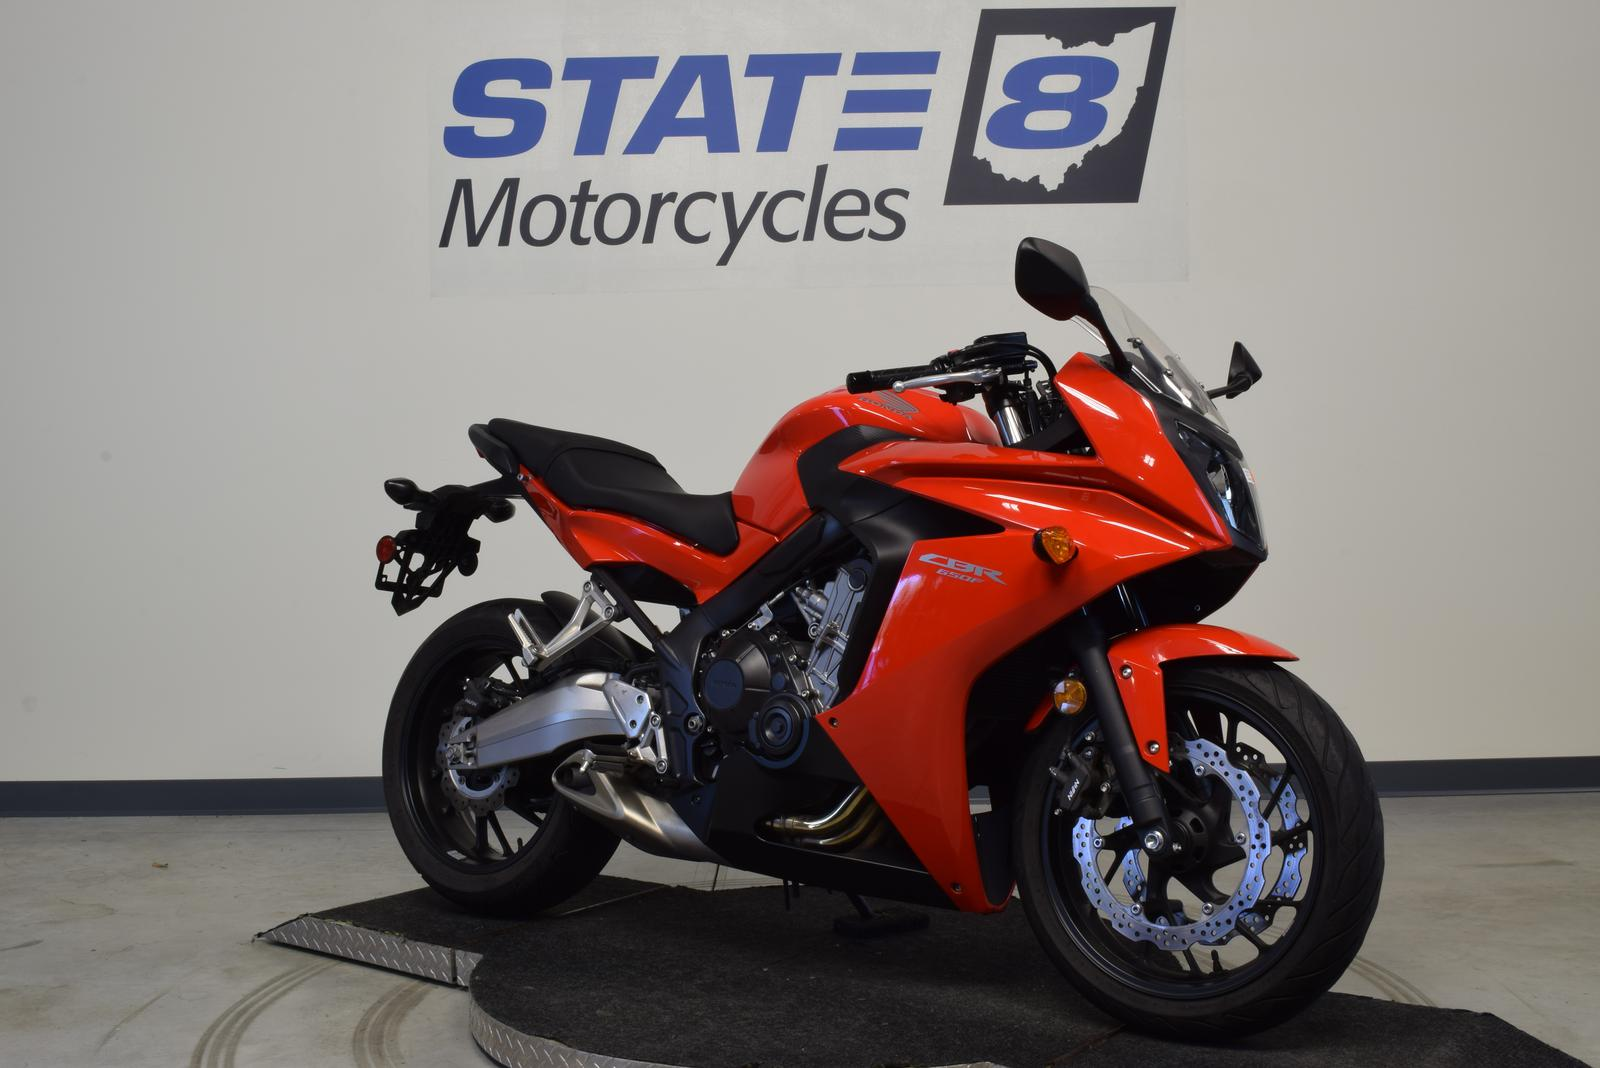 Used Honda Motorcycles >> Used Inventory From Honda State 8 Motorcycles